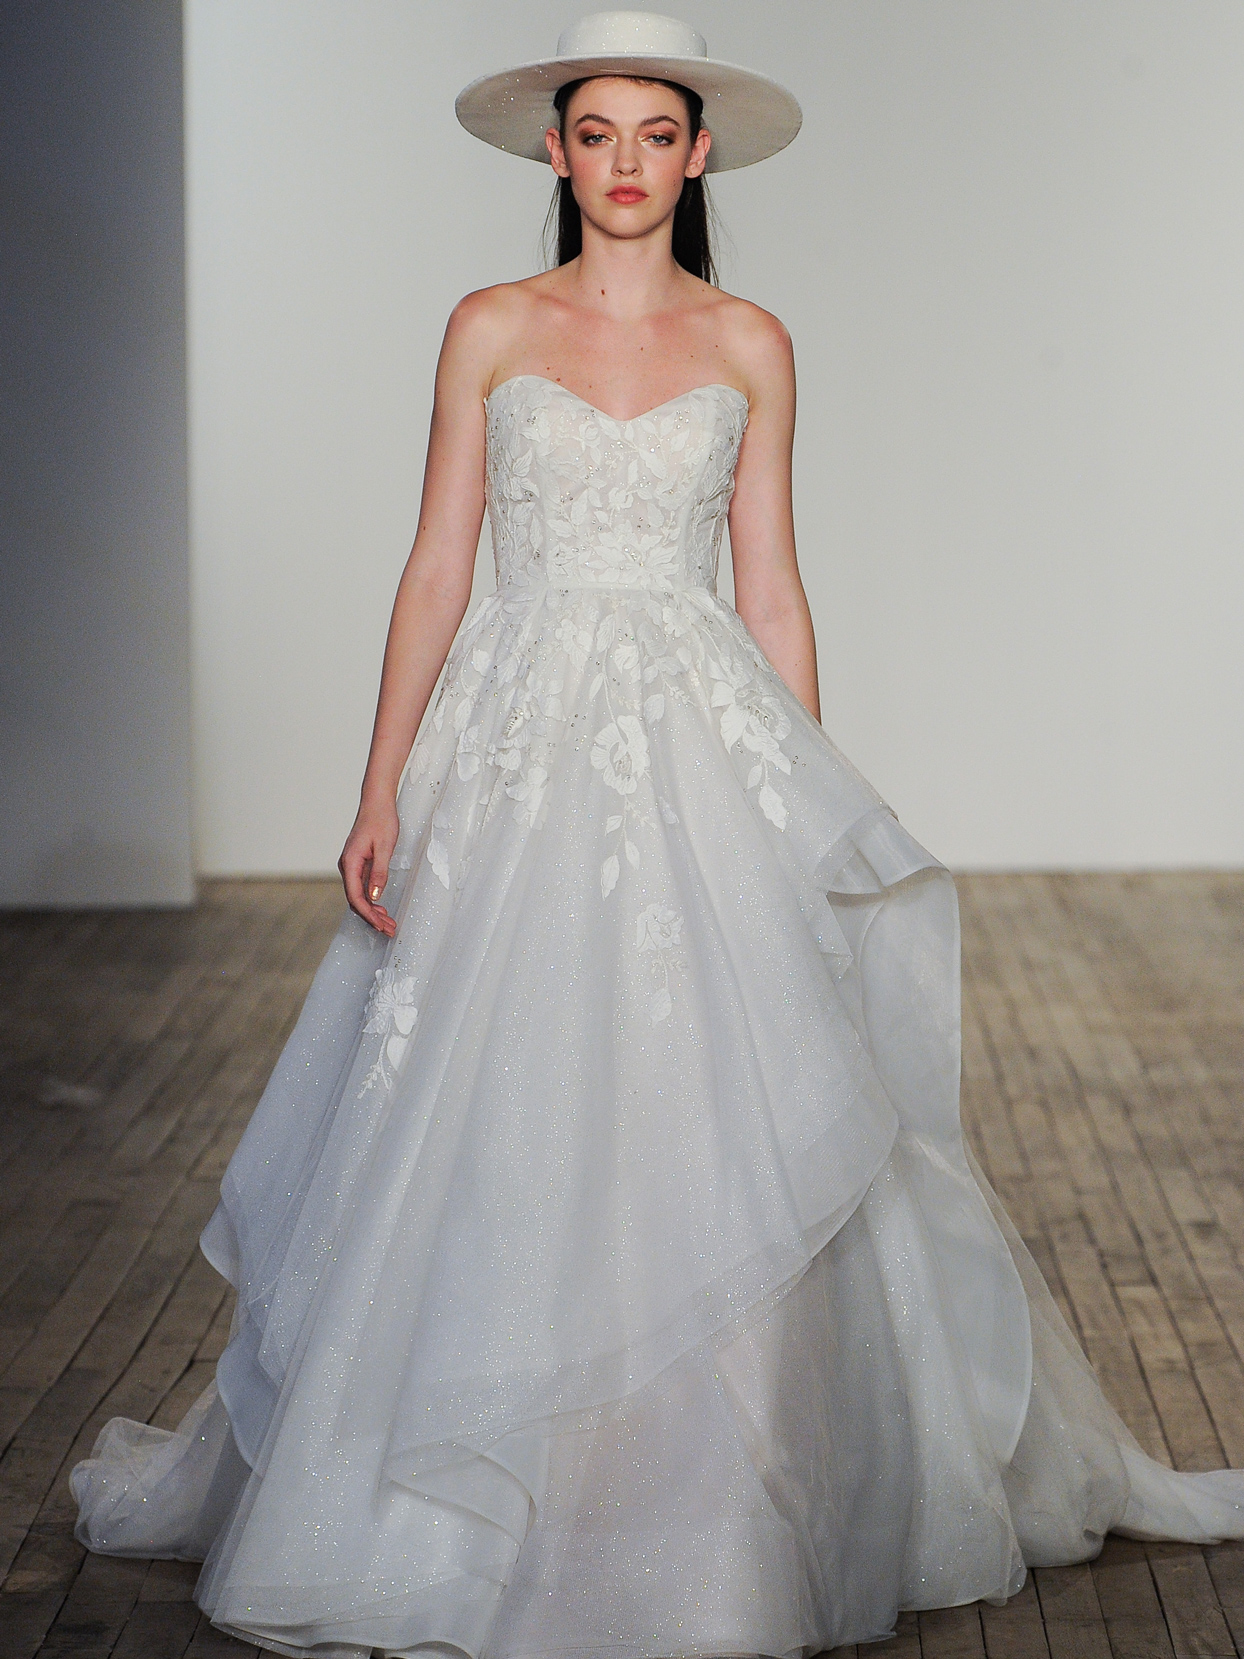 Hayley Paige embroidered tulle ballgown strapless sweetheart wedding dress fall 2020